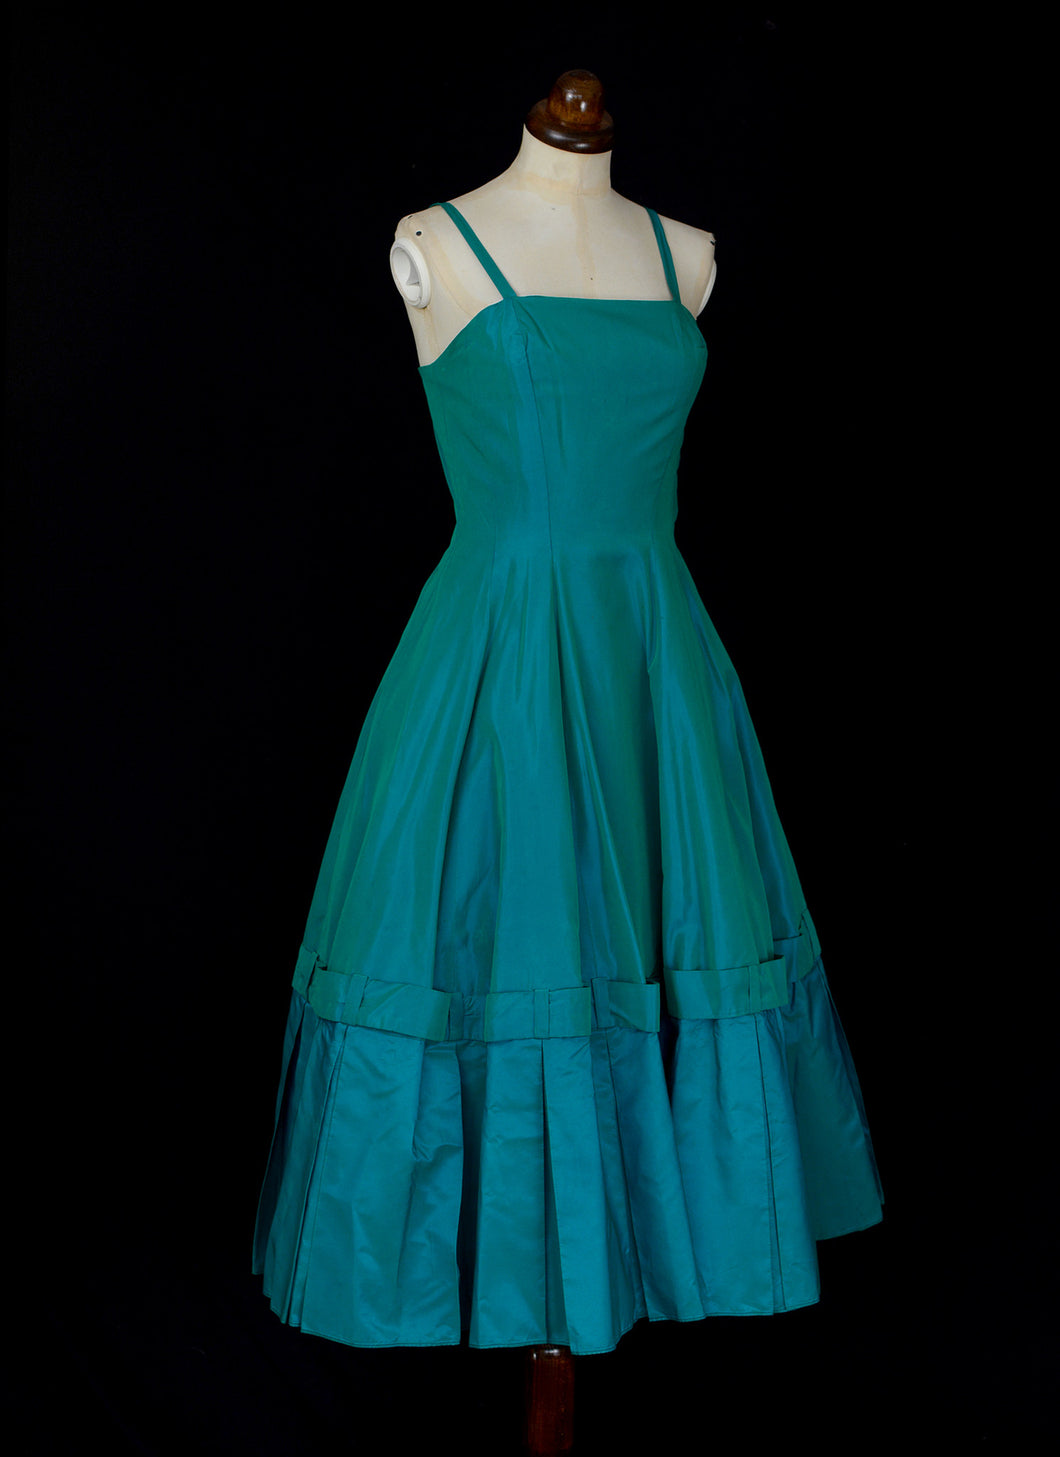 Vintage 1950s Turquiose Green Taffeta Cocktail Dress